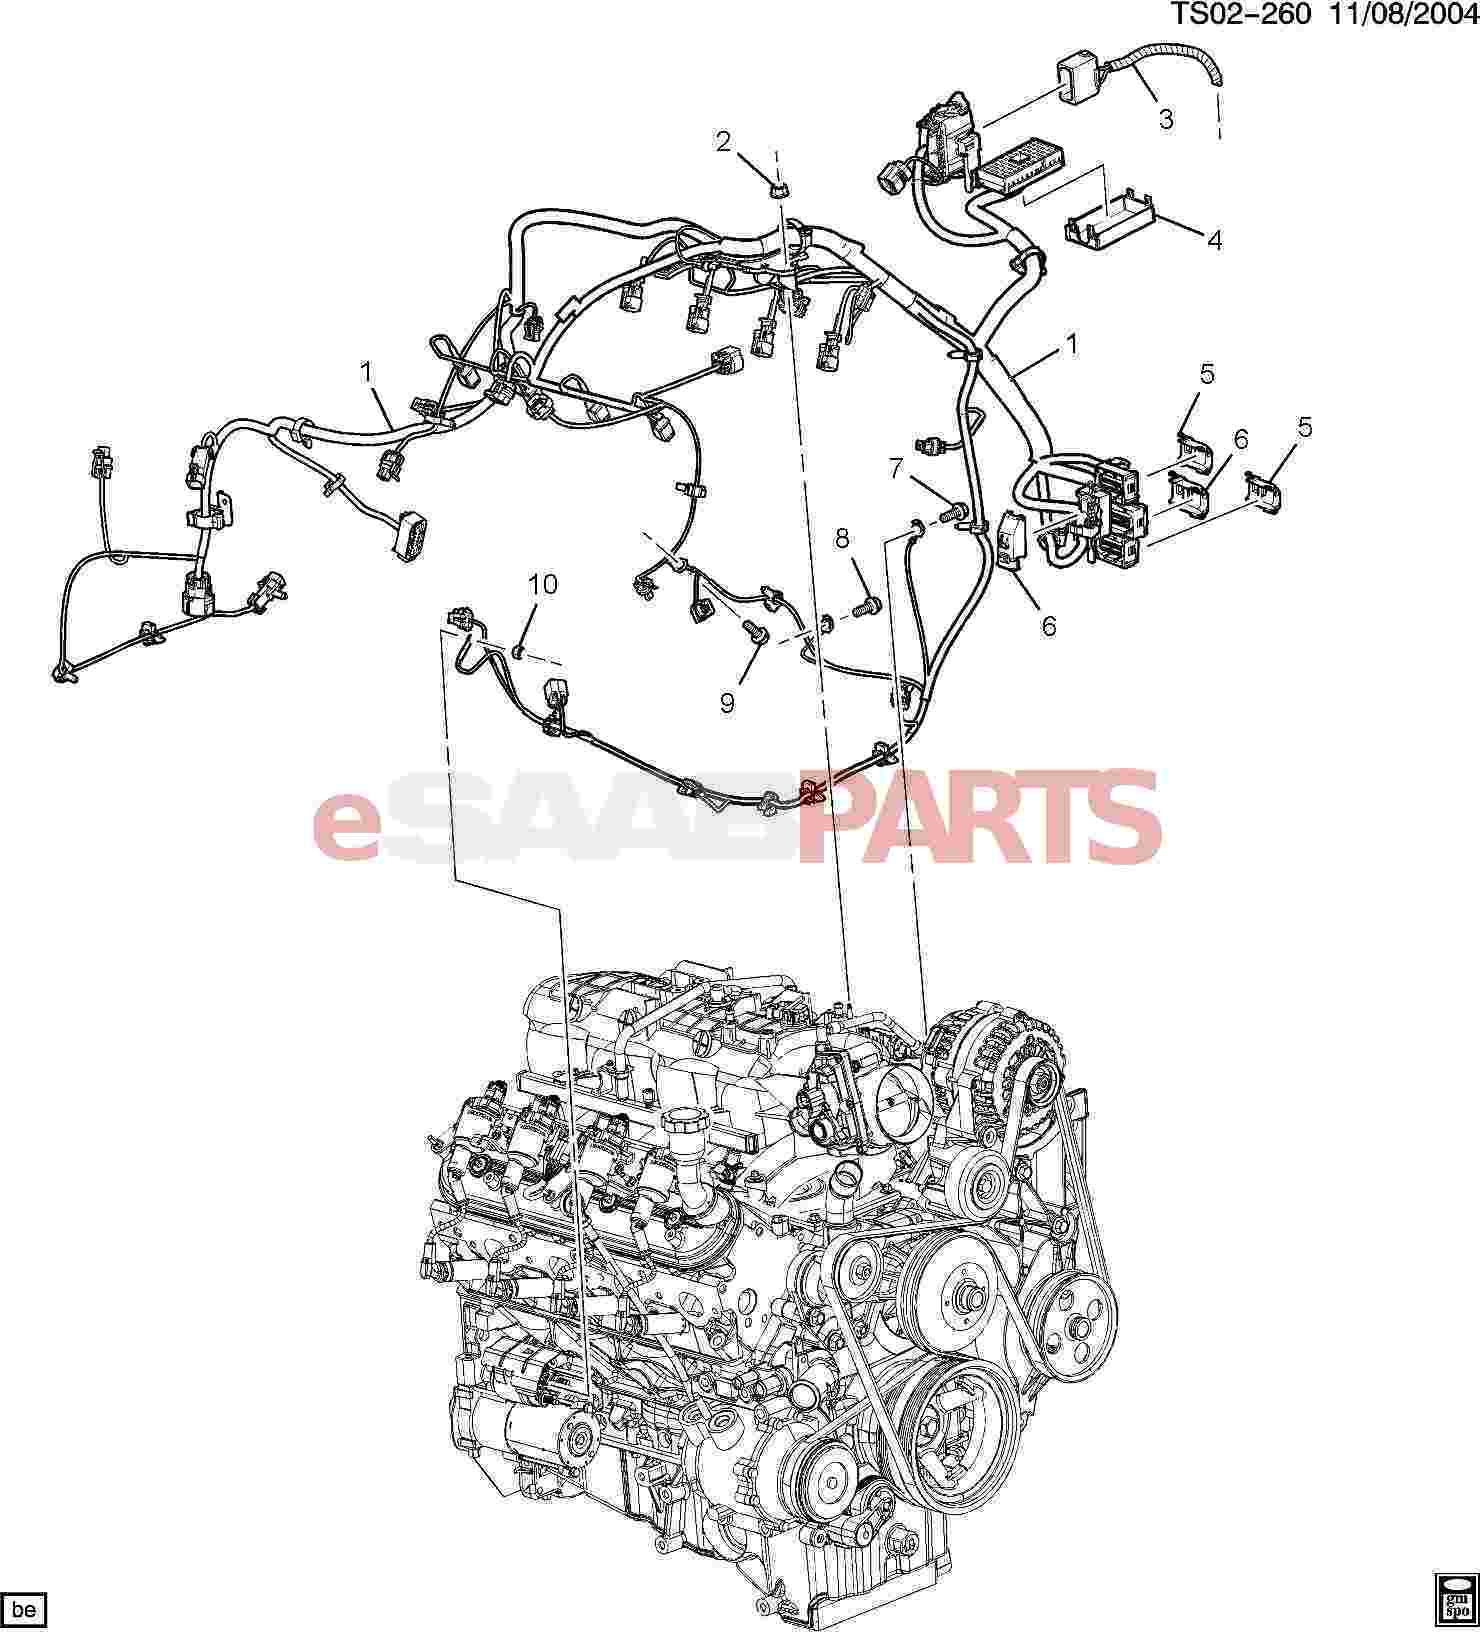 hight resolution of 5 3 wiring harness diagram wiring diagram origin 2004 tahoe wiring schematic 5 3 wiring harness